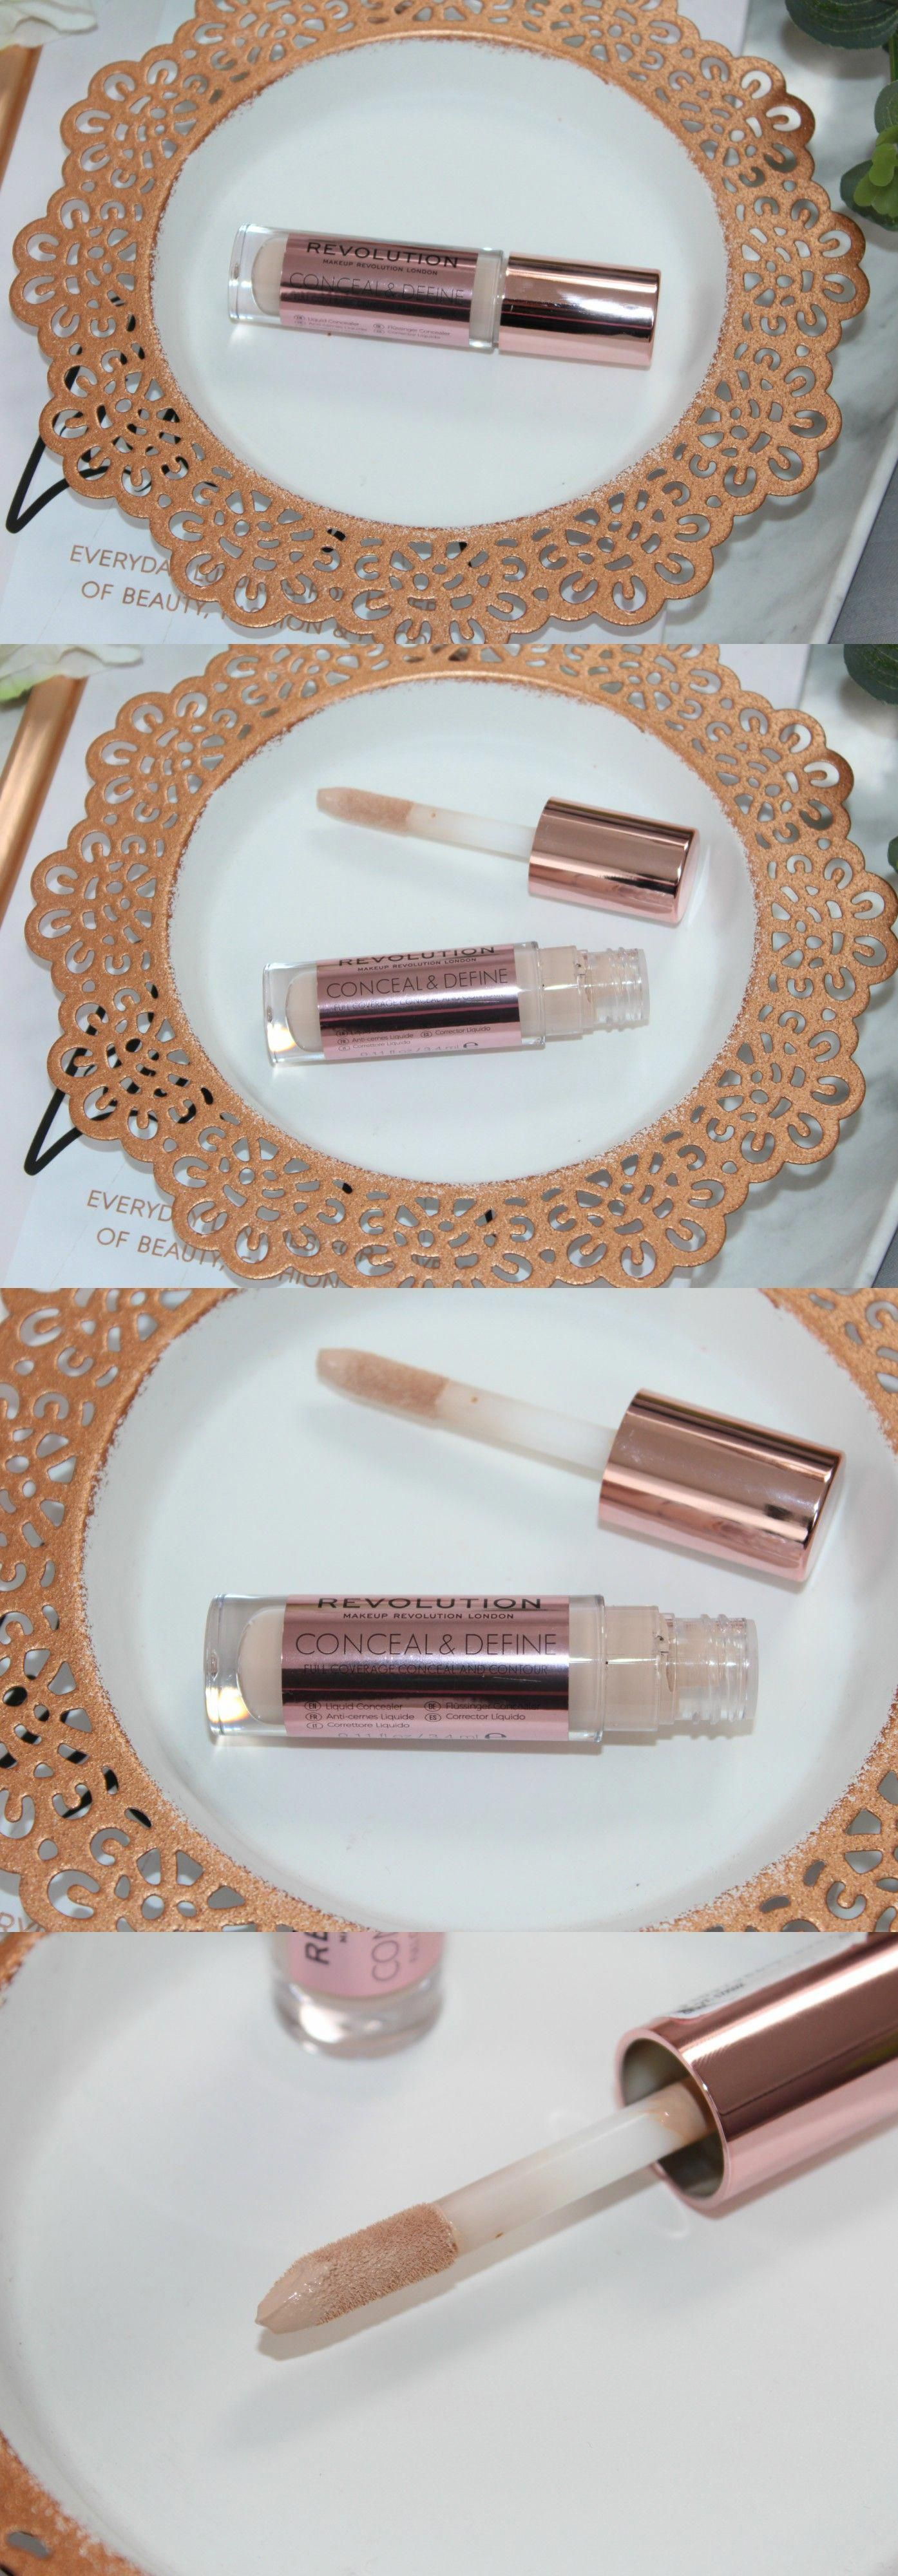 Makeup Revolution Conceal and Define Concealer Review and